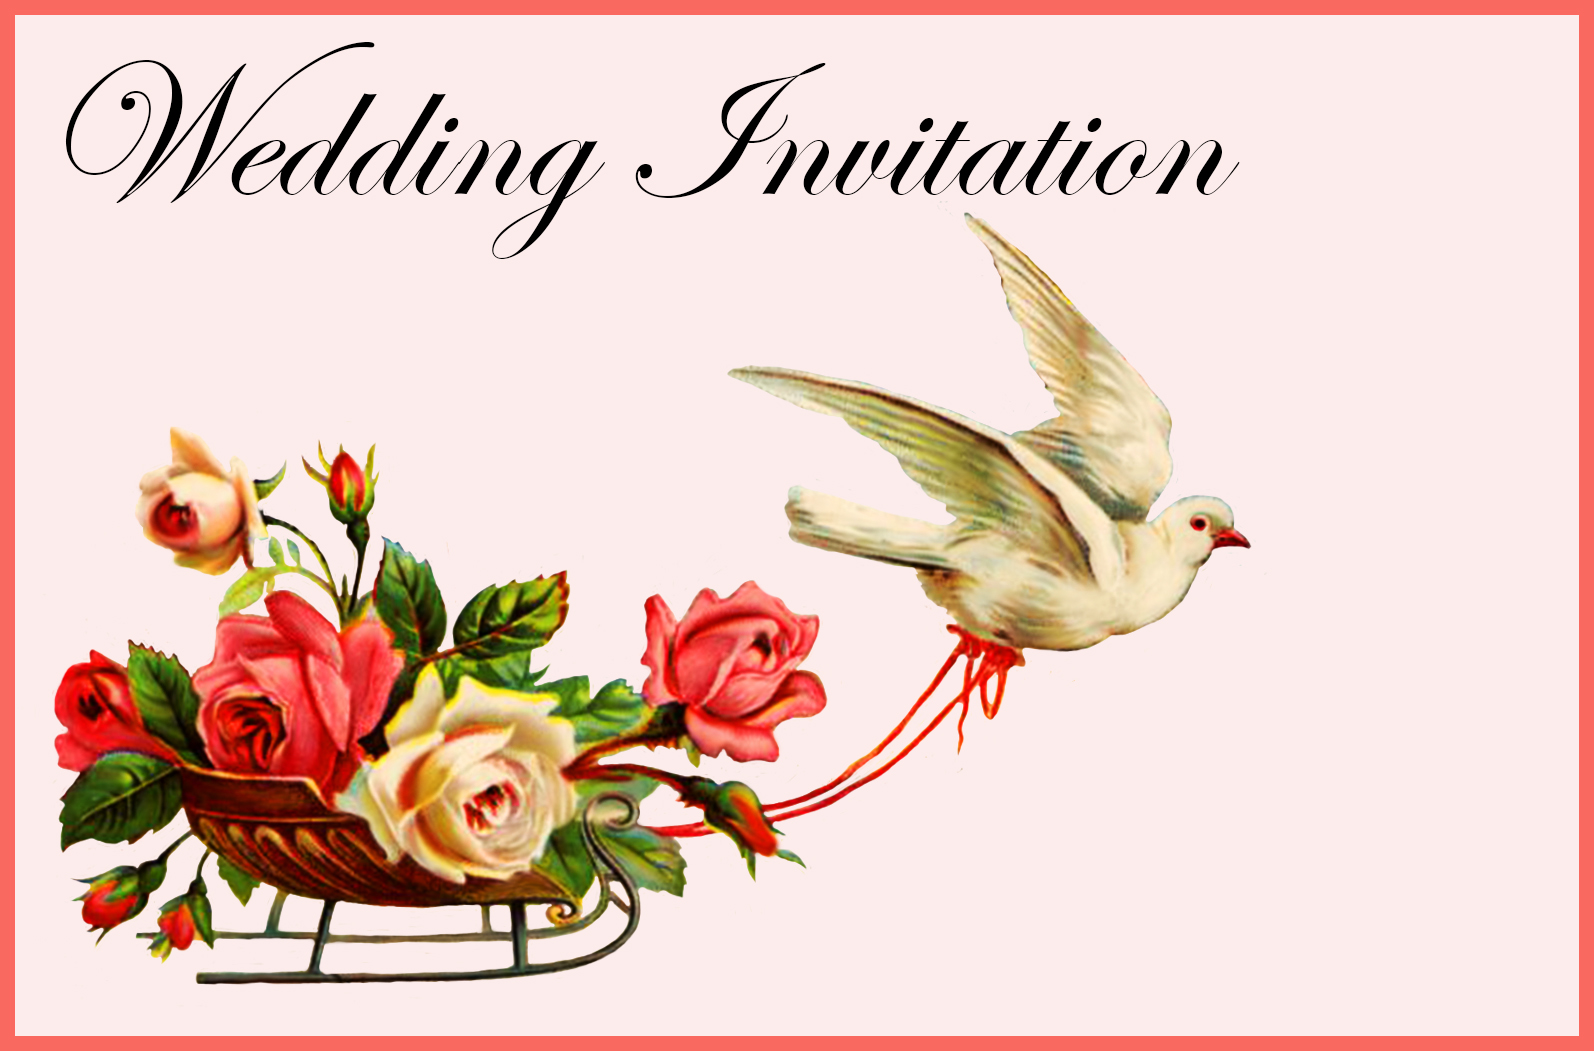 Printable Wedding Invitation Cards – Printable Wedding Invitation Cards